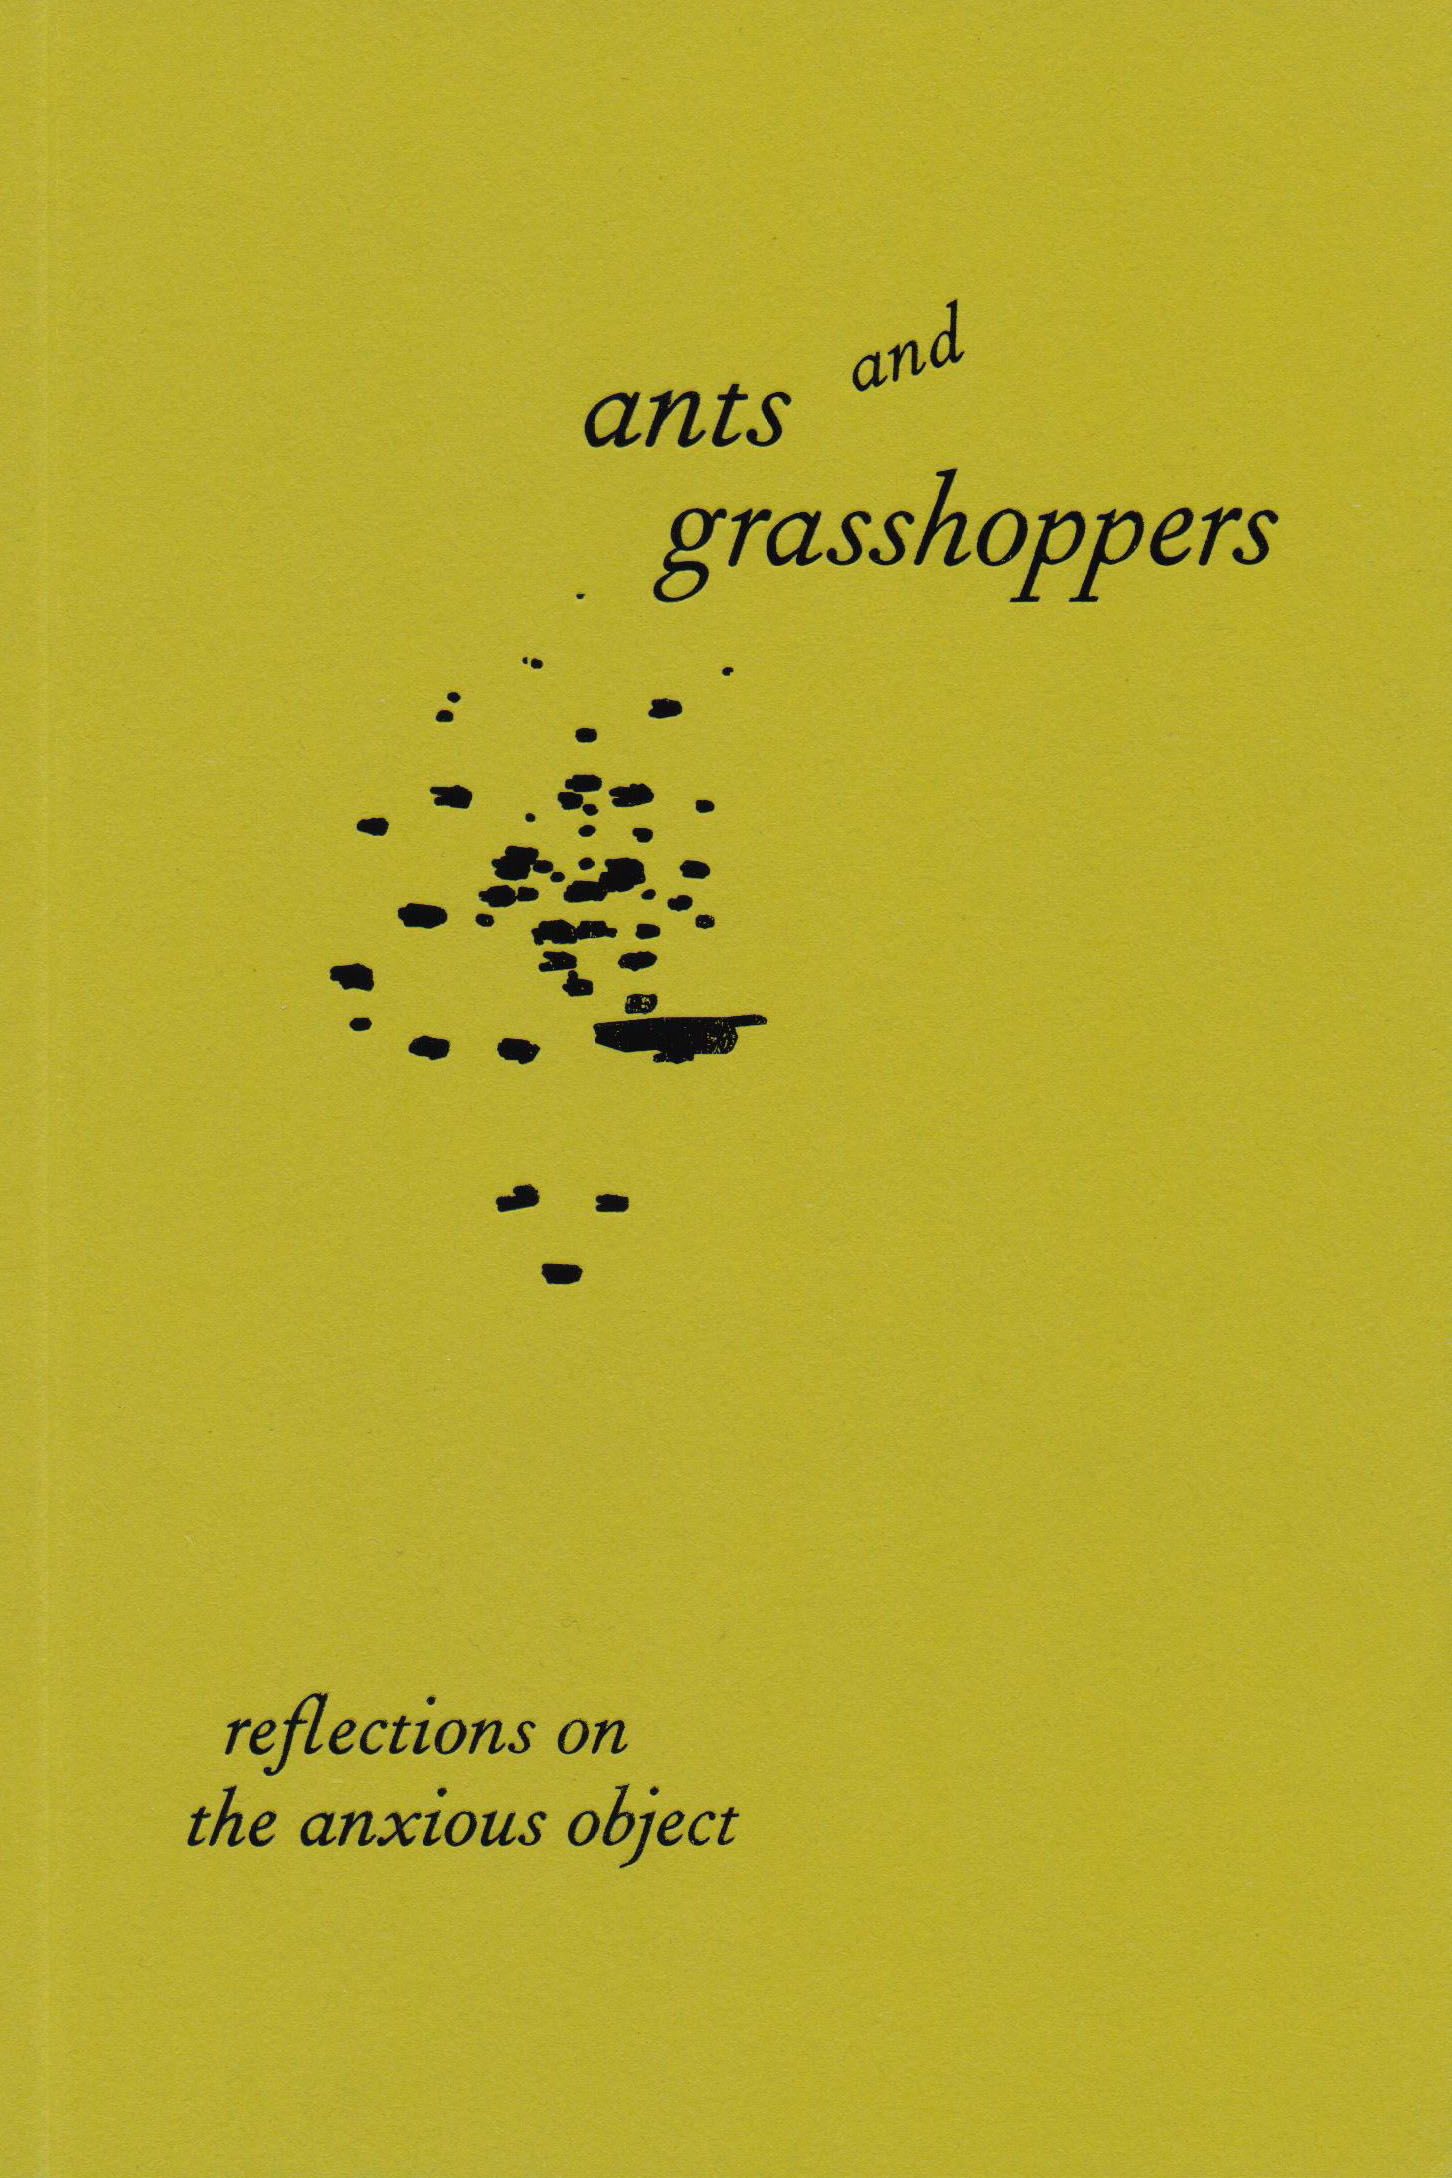 (Ants and Grasshoppers Publication 0)